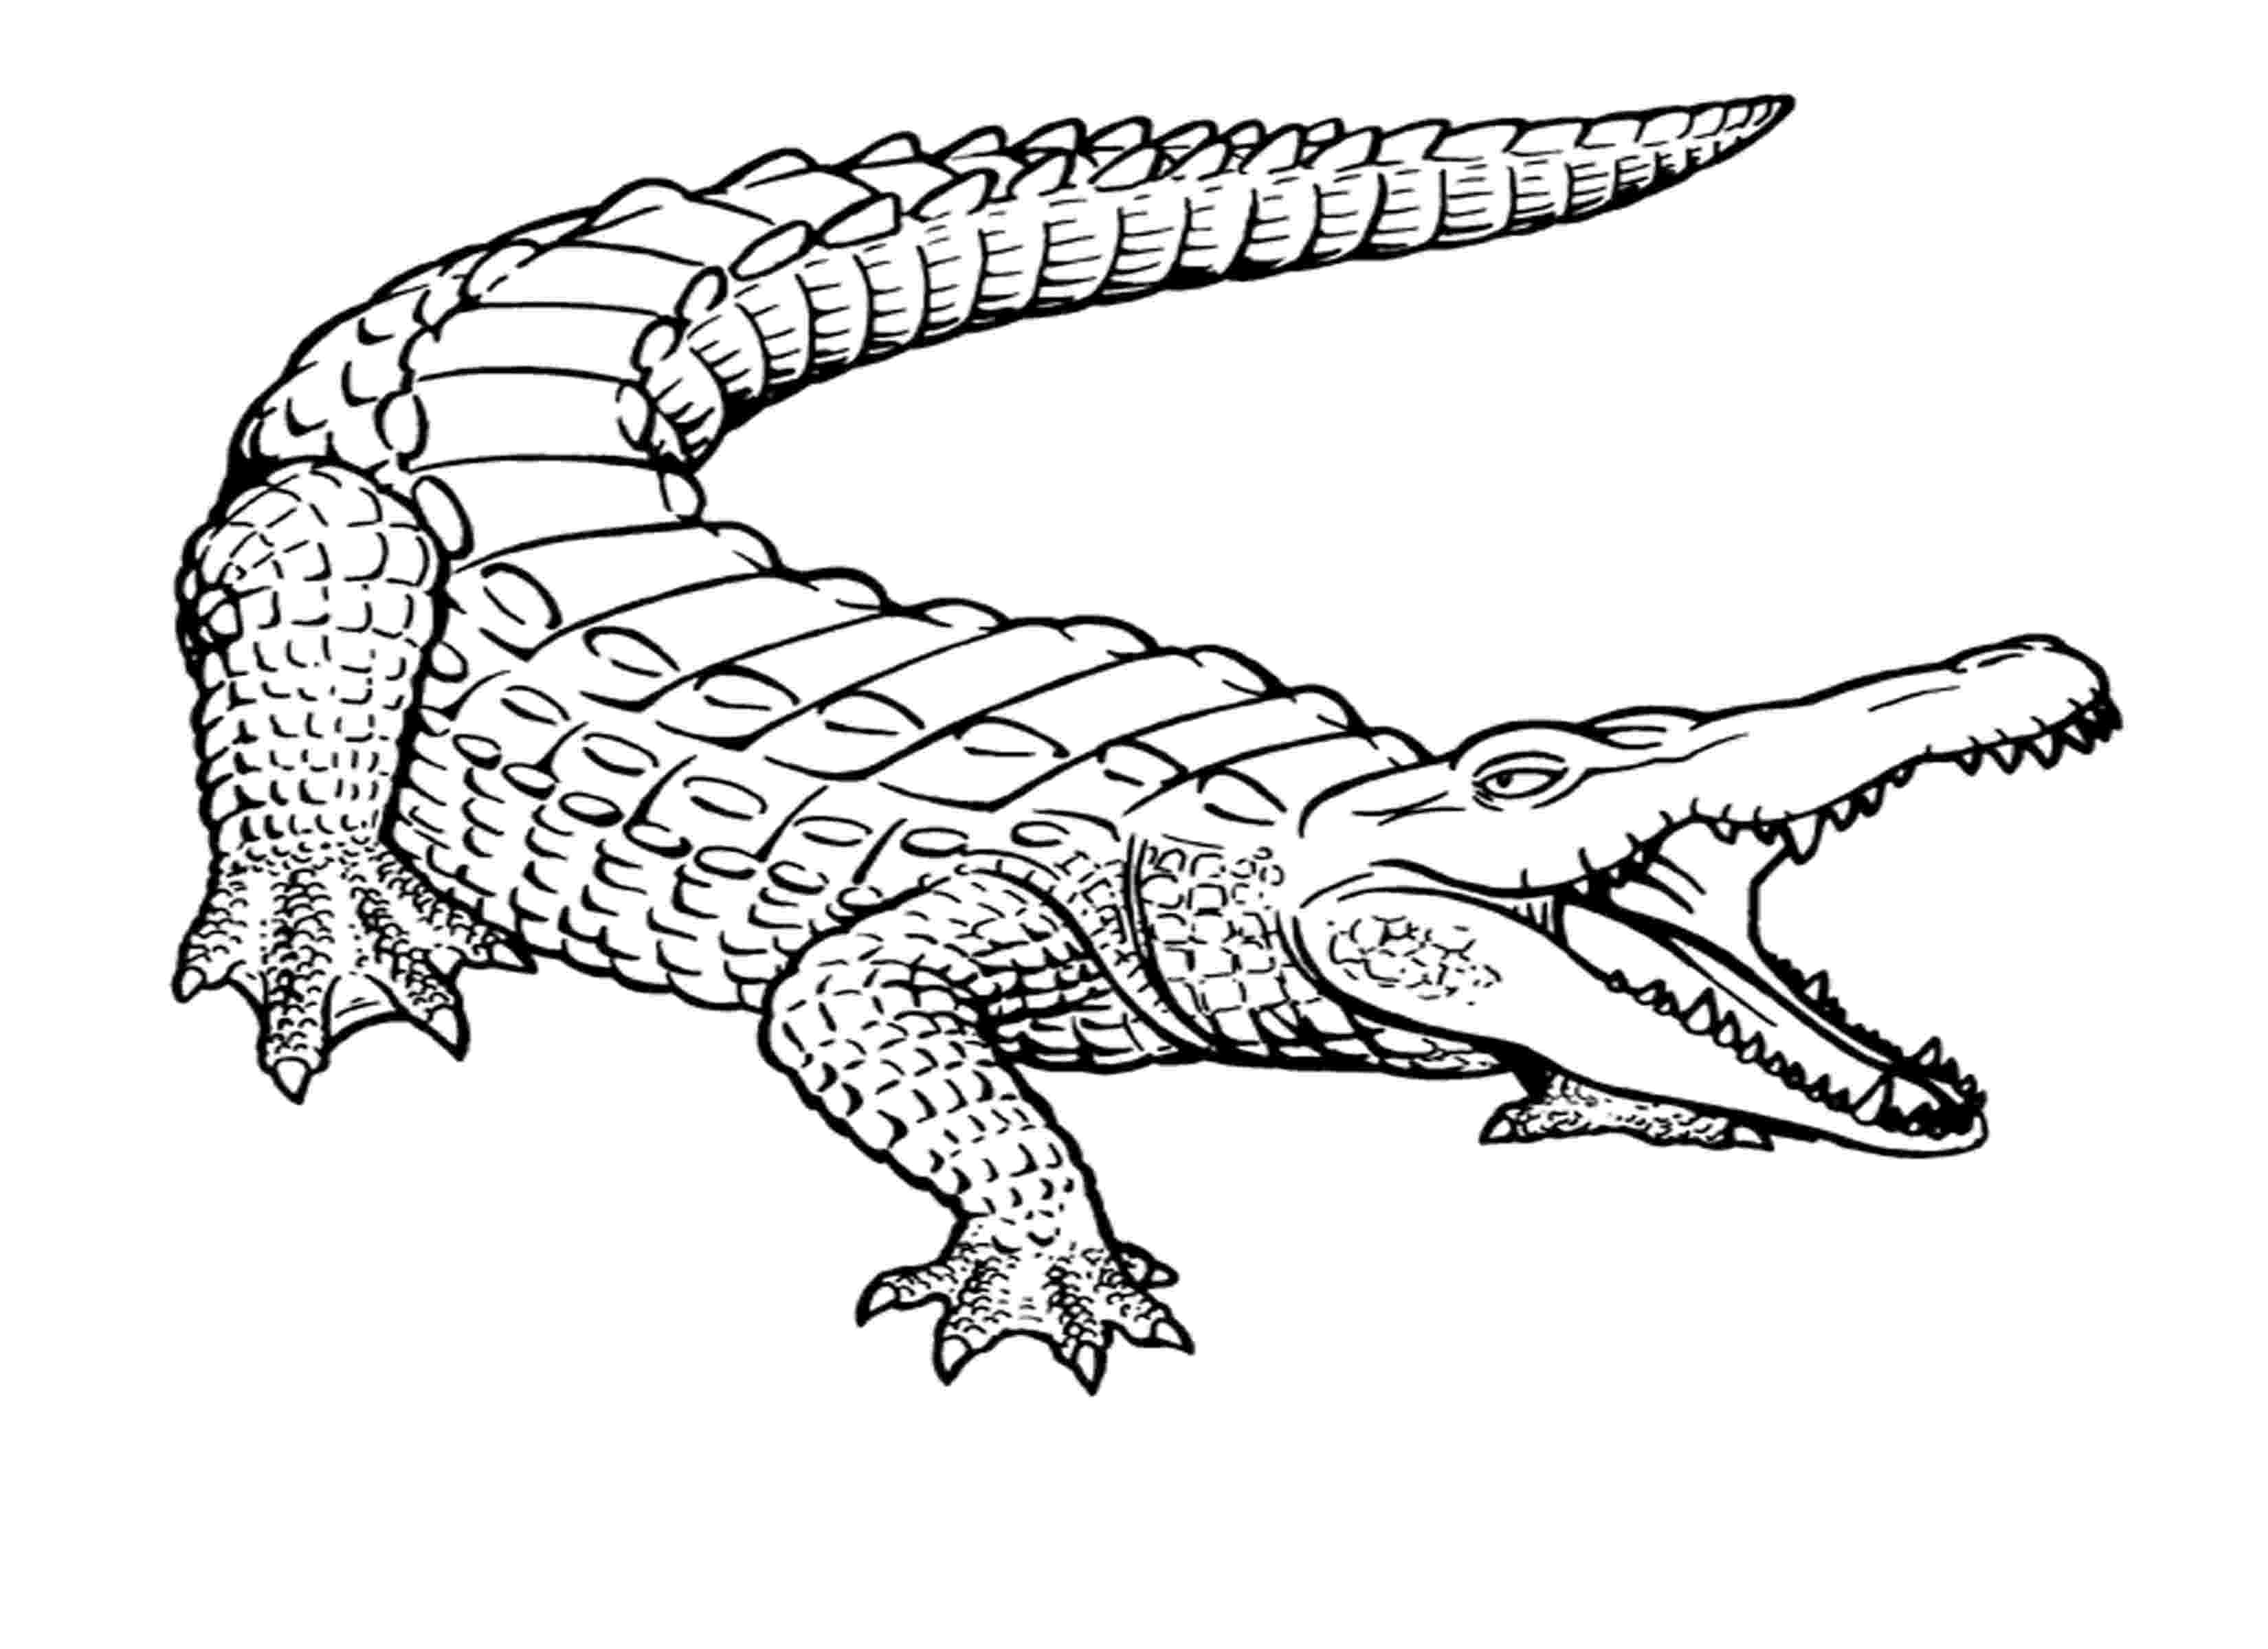 crocodile coloring free printable crocodile coloring pages for kids coloring crocodile